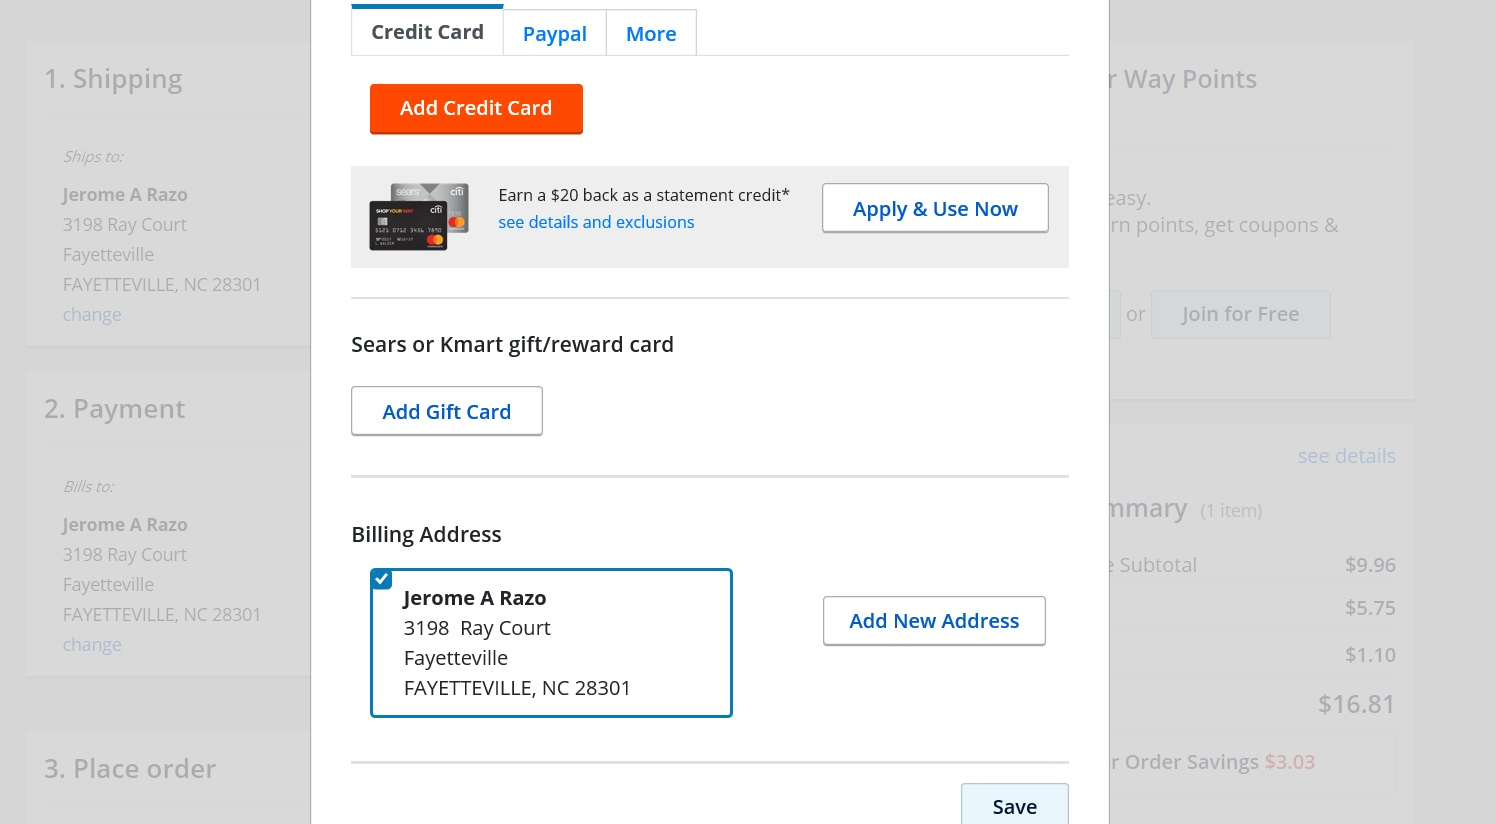 Page to add a credit card, PayPal or a gift card.